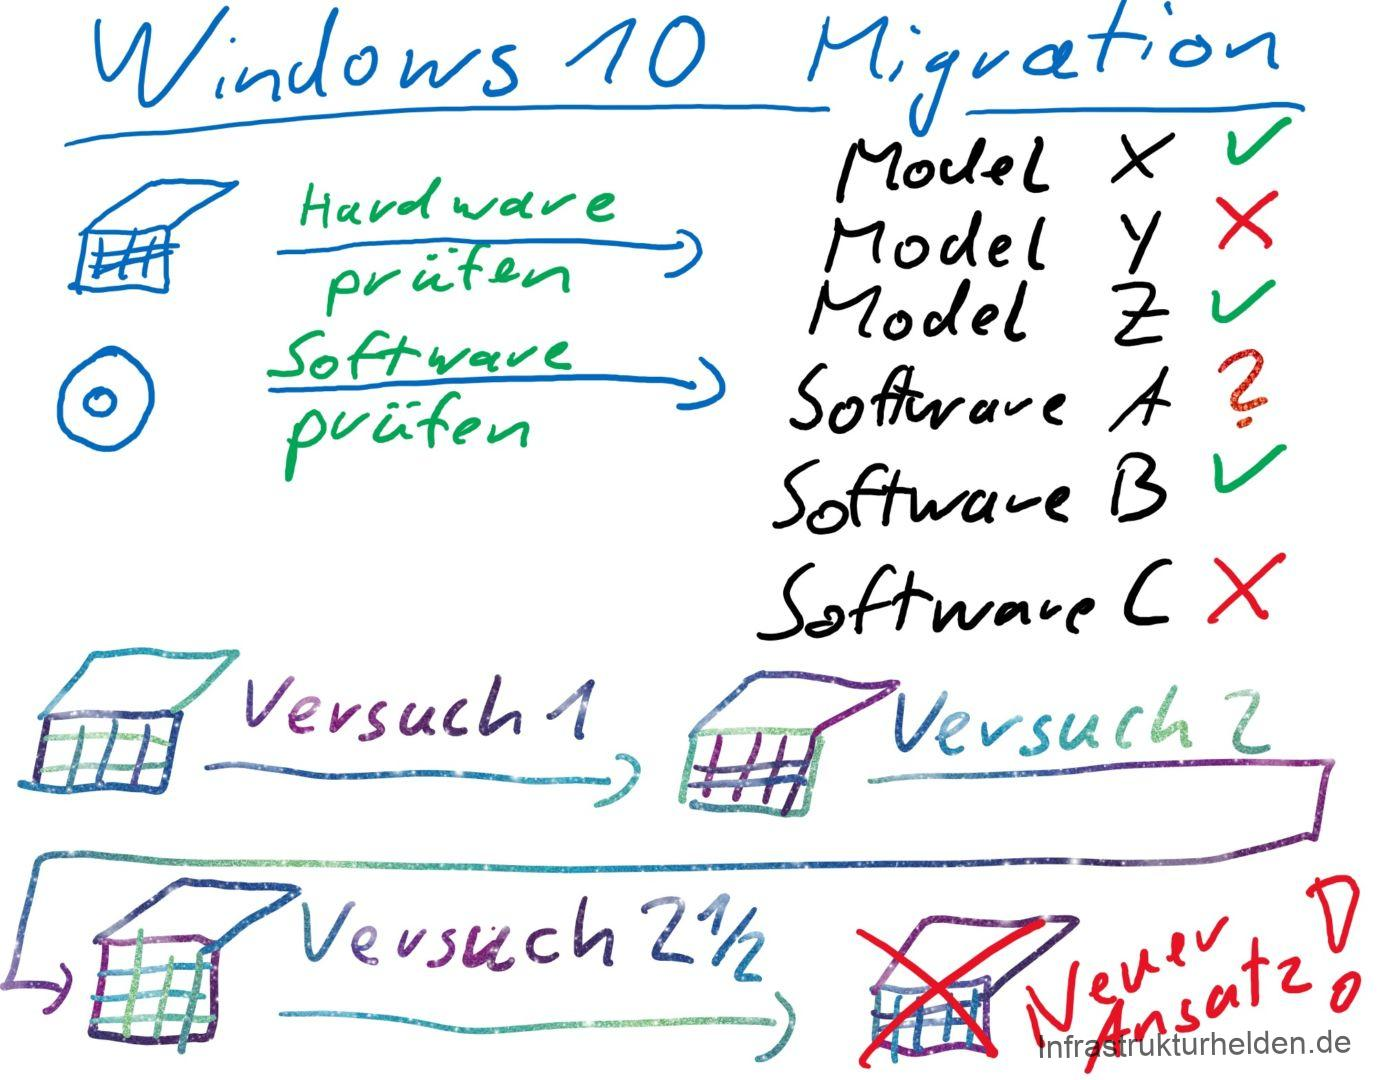 End of the Windows 7 Life-Cycle – Migration approaches from the field